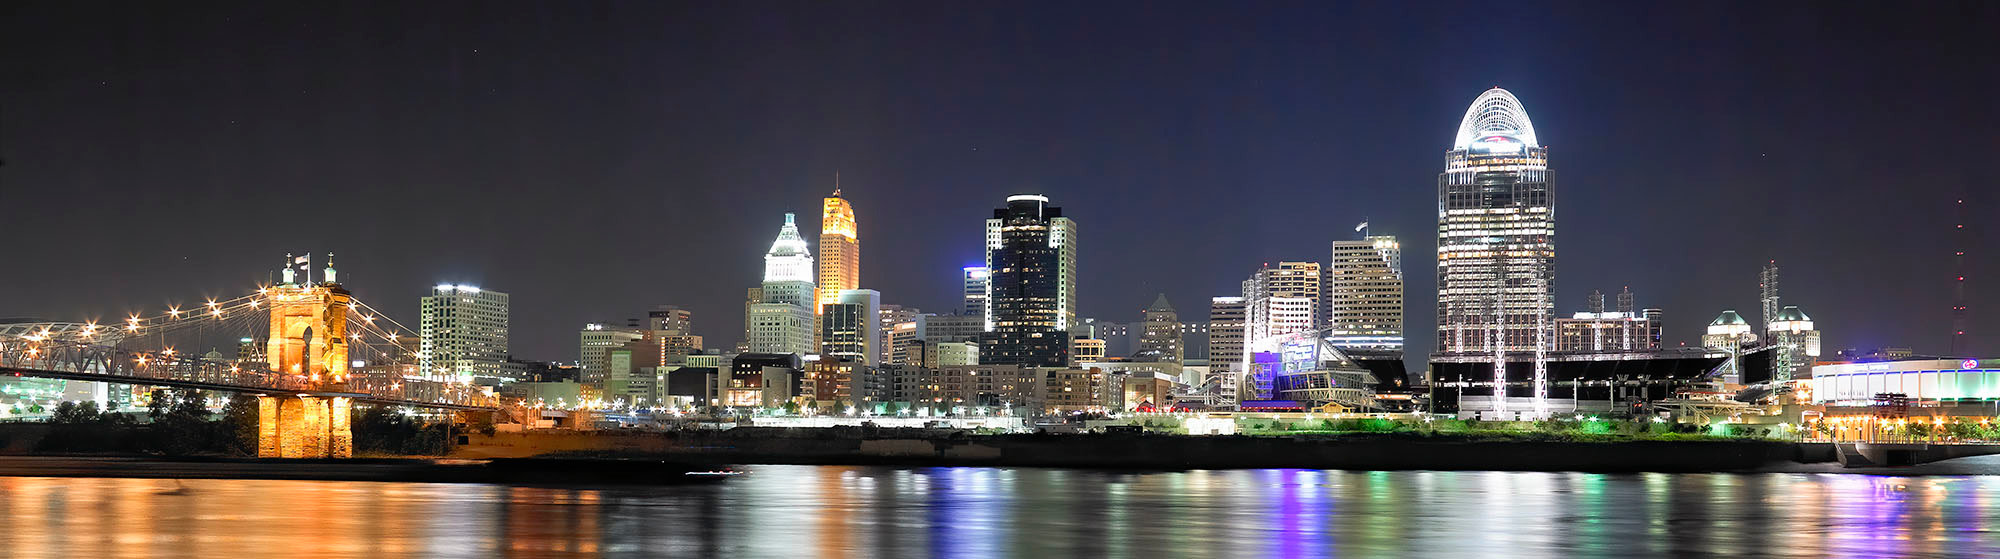 <div class='title'>           Cincinnati By Night Number 1 goz4lc         </div>